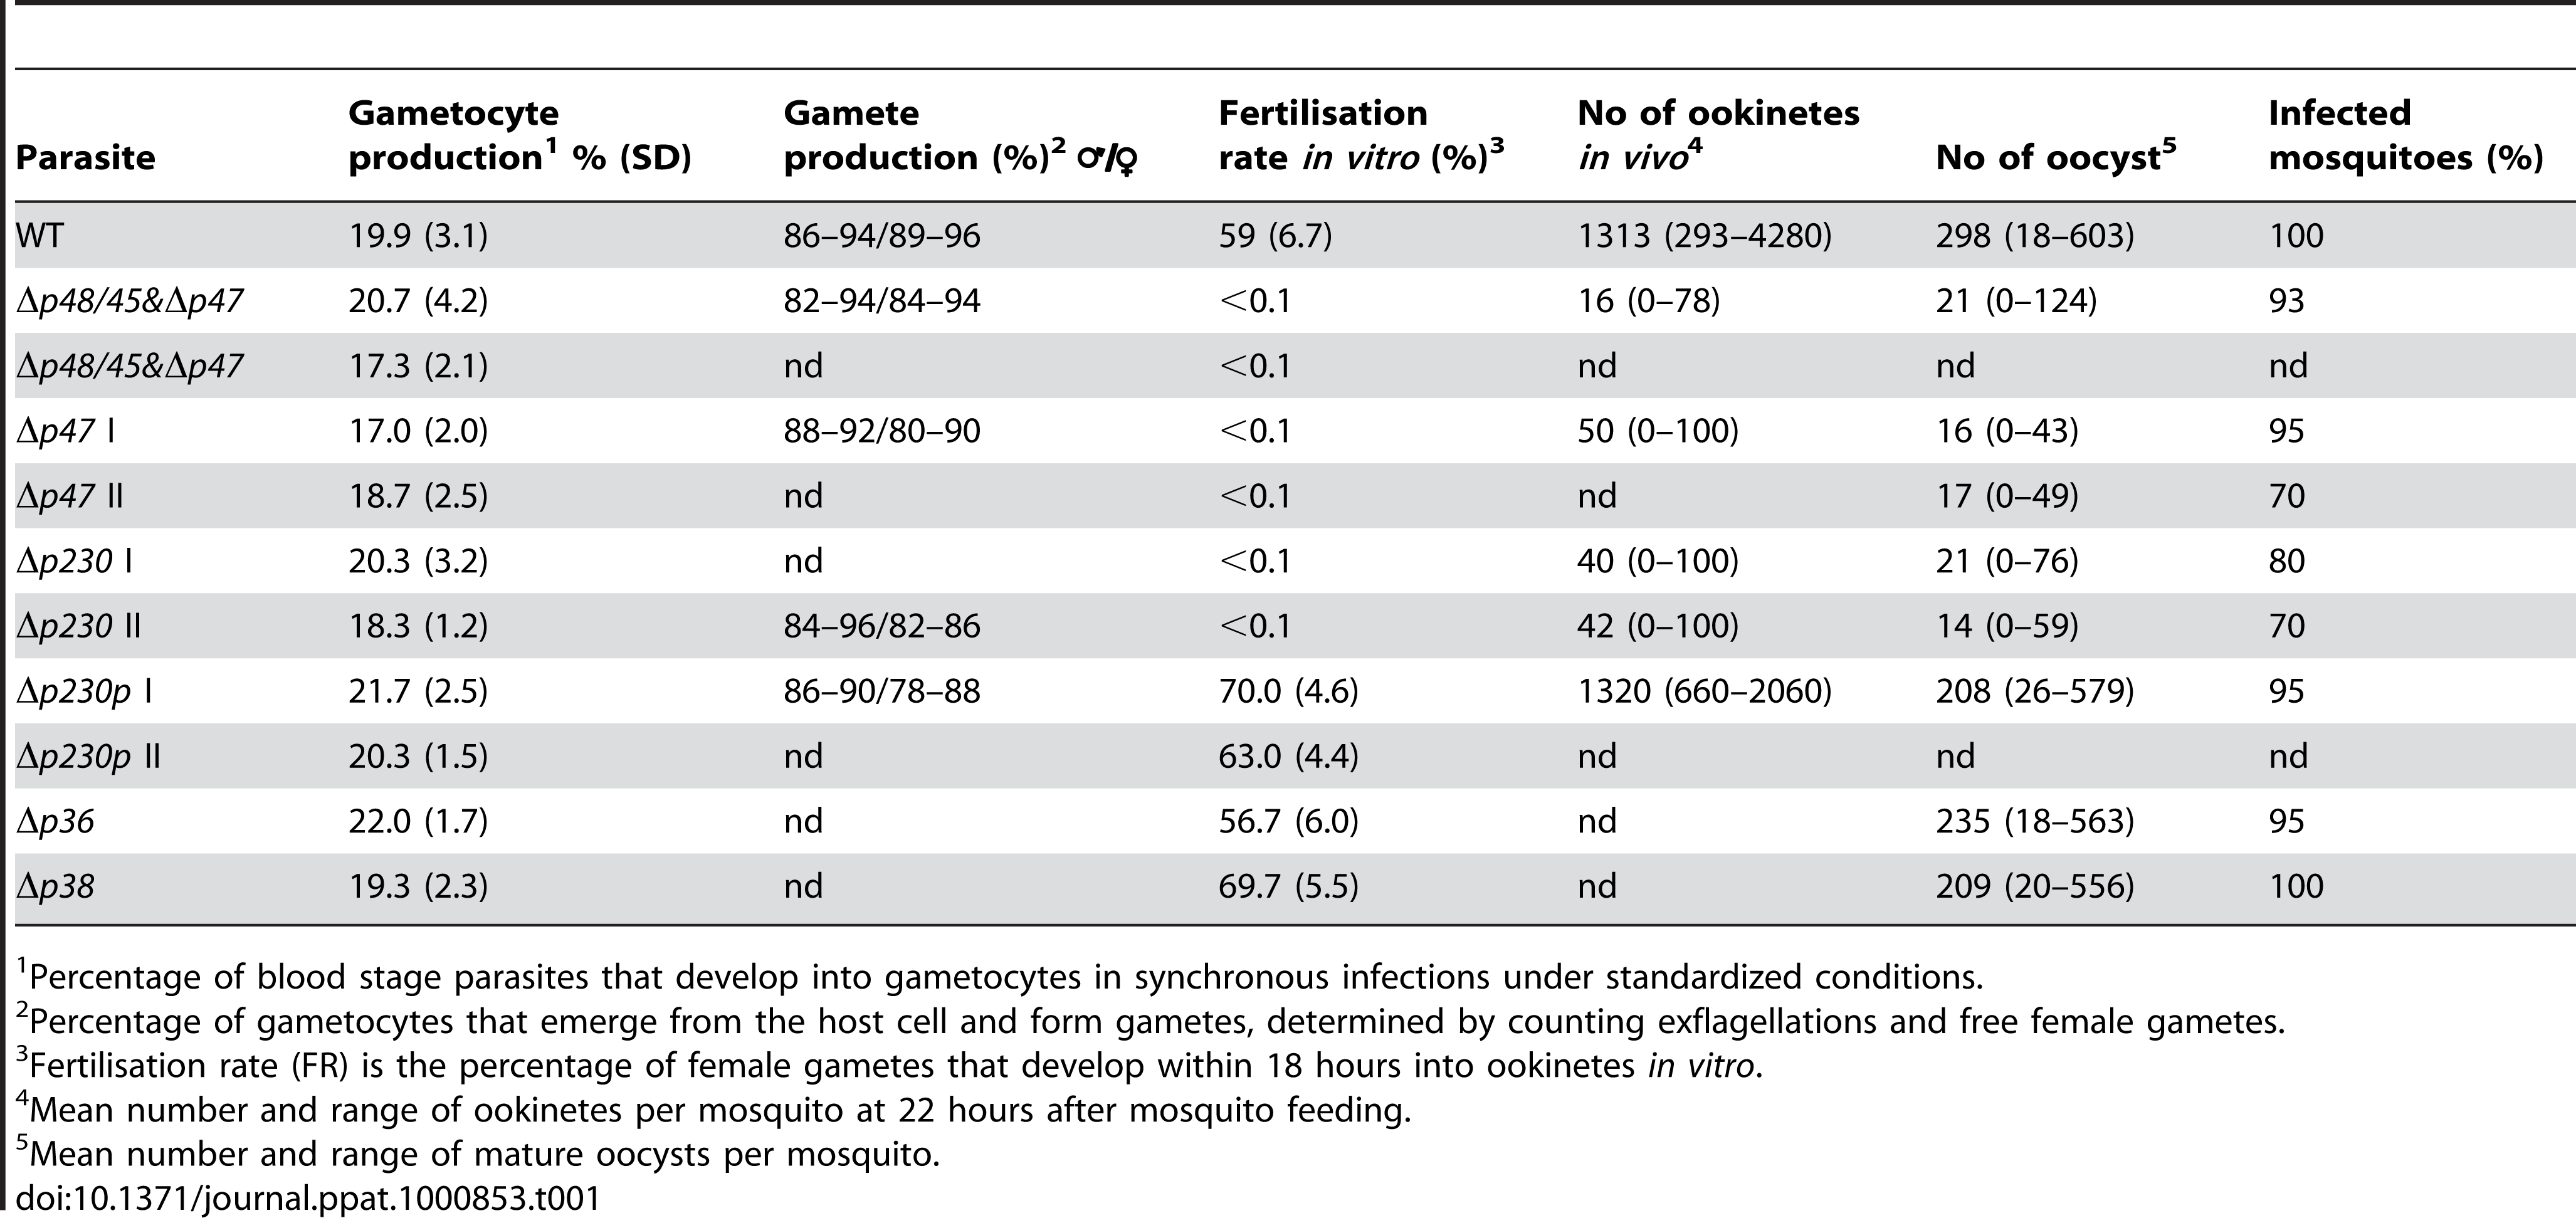 Gametocyte/gamete production, fertilisation rate and development in mosquitoes of different mutants that lack expression of members of the 6-cys family of proteins.